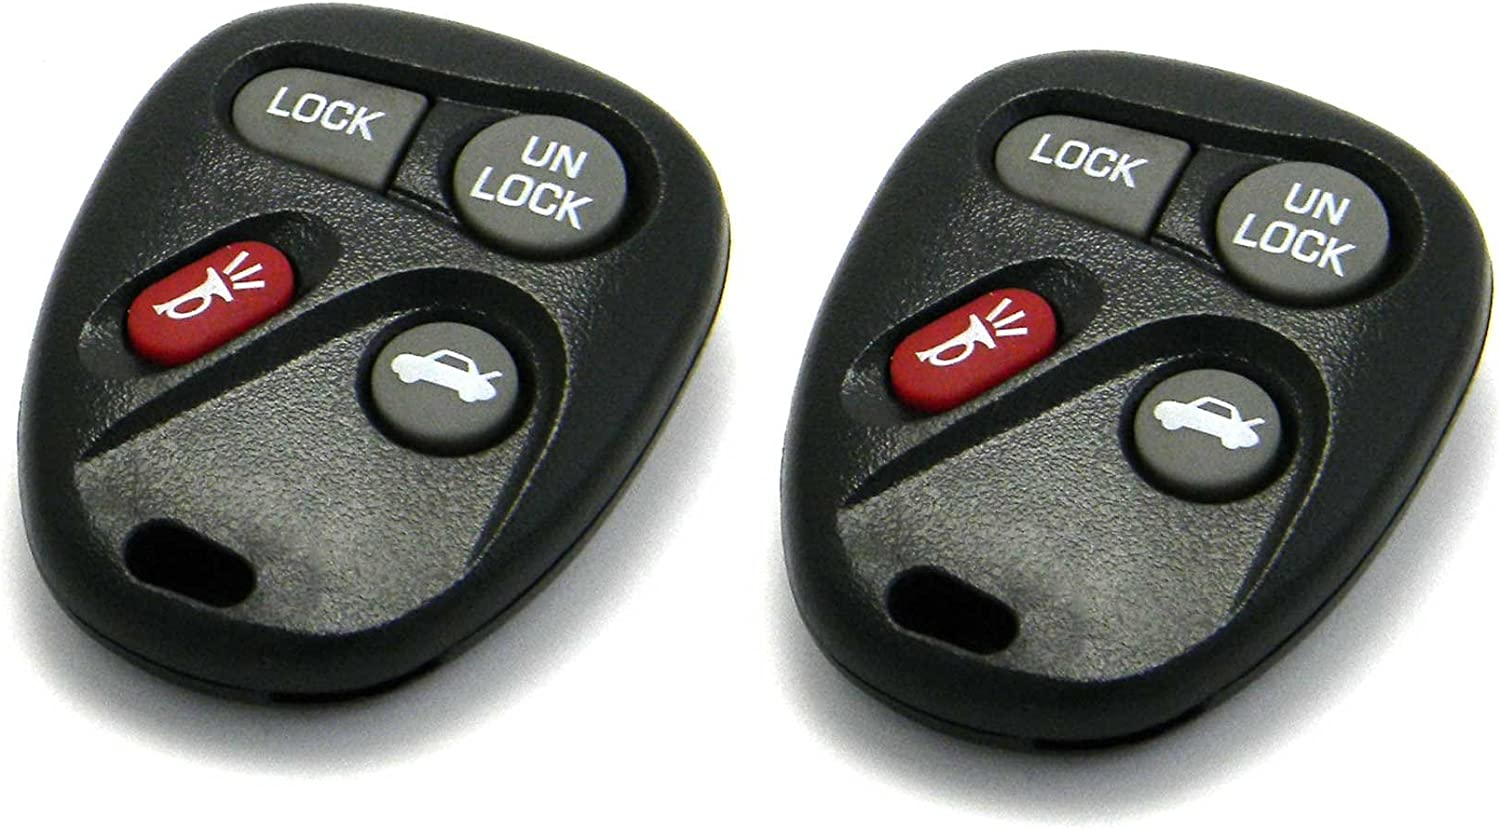 FCC ID: L2C0005T, P//N: 16263074-99 Pair of OEM Electronic 4-Button Key Fob Remotes Compatible With Cadillac Chevrolet Pontiac Saturn